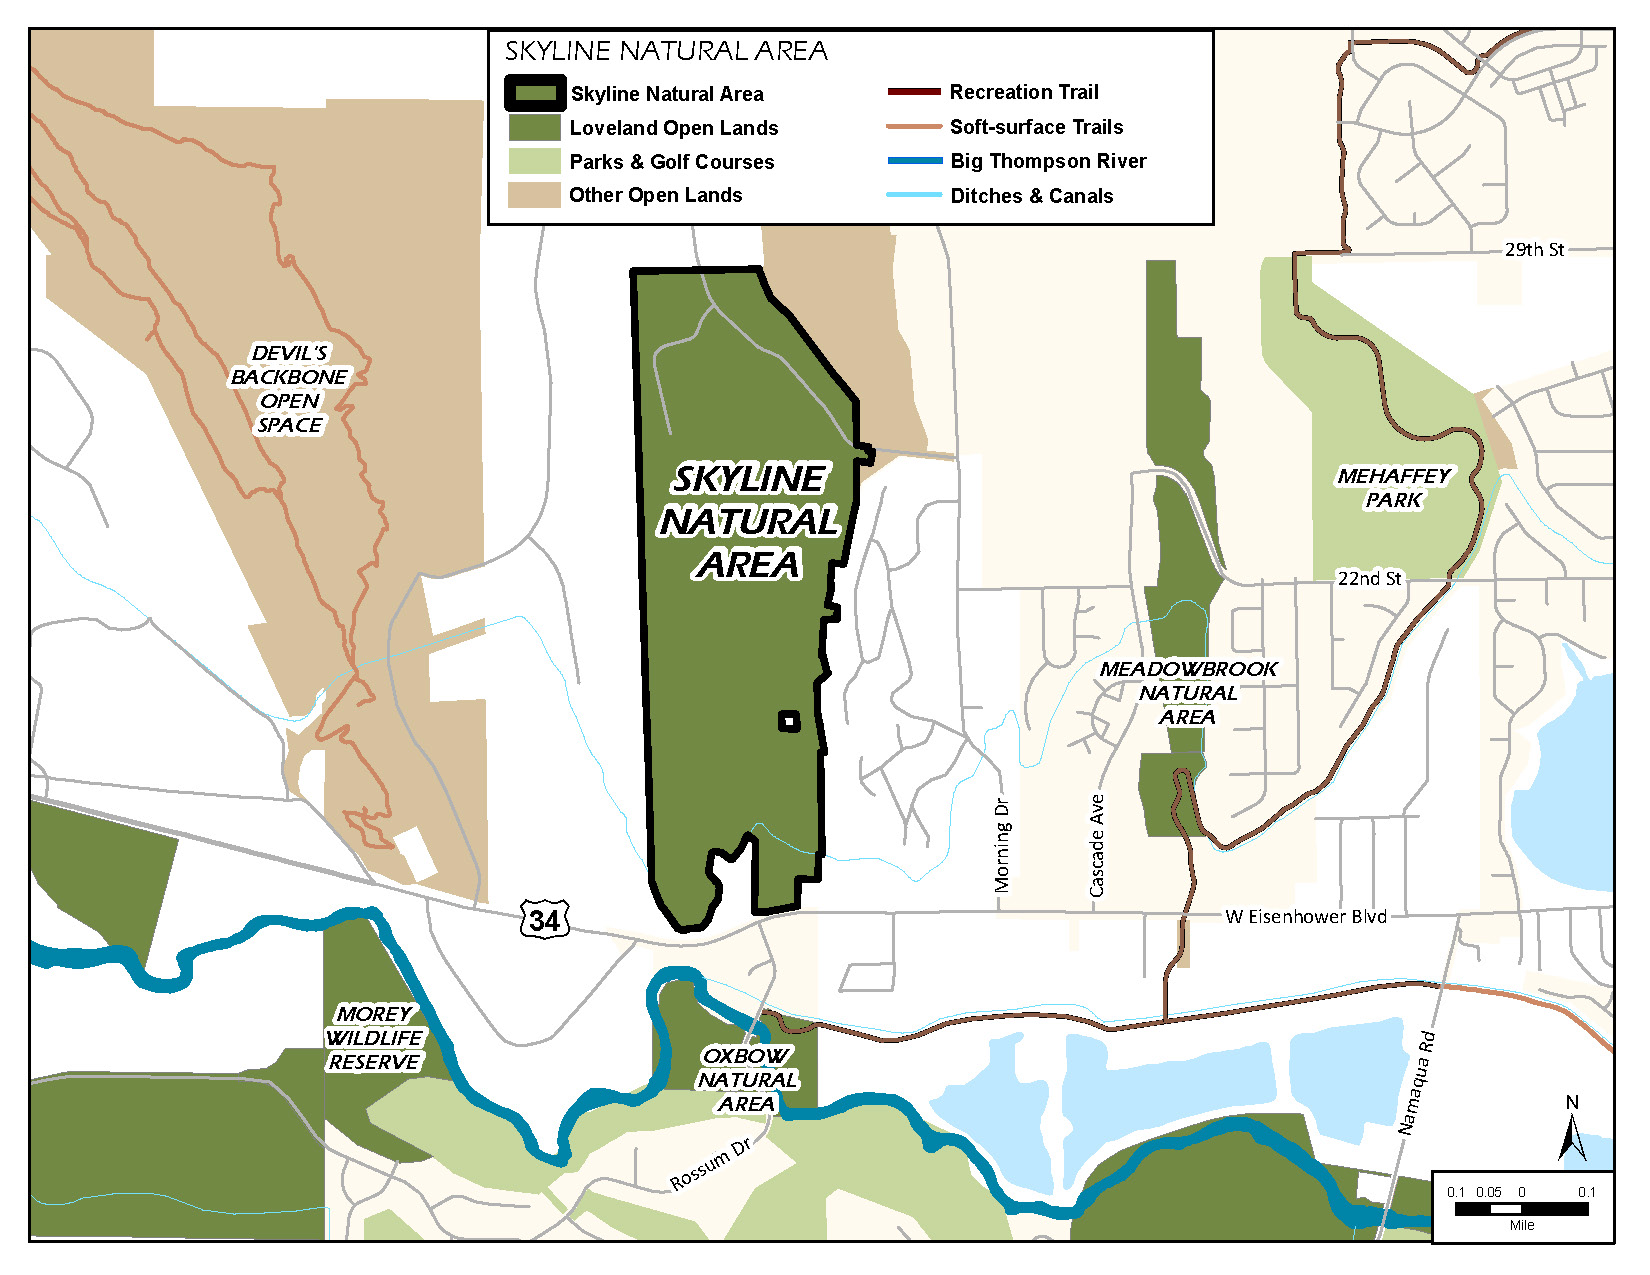 map of Skyline Natural Area